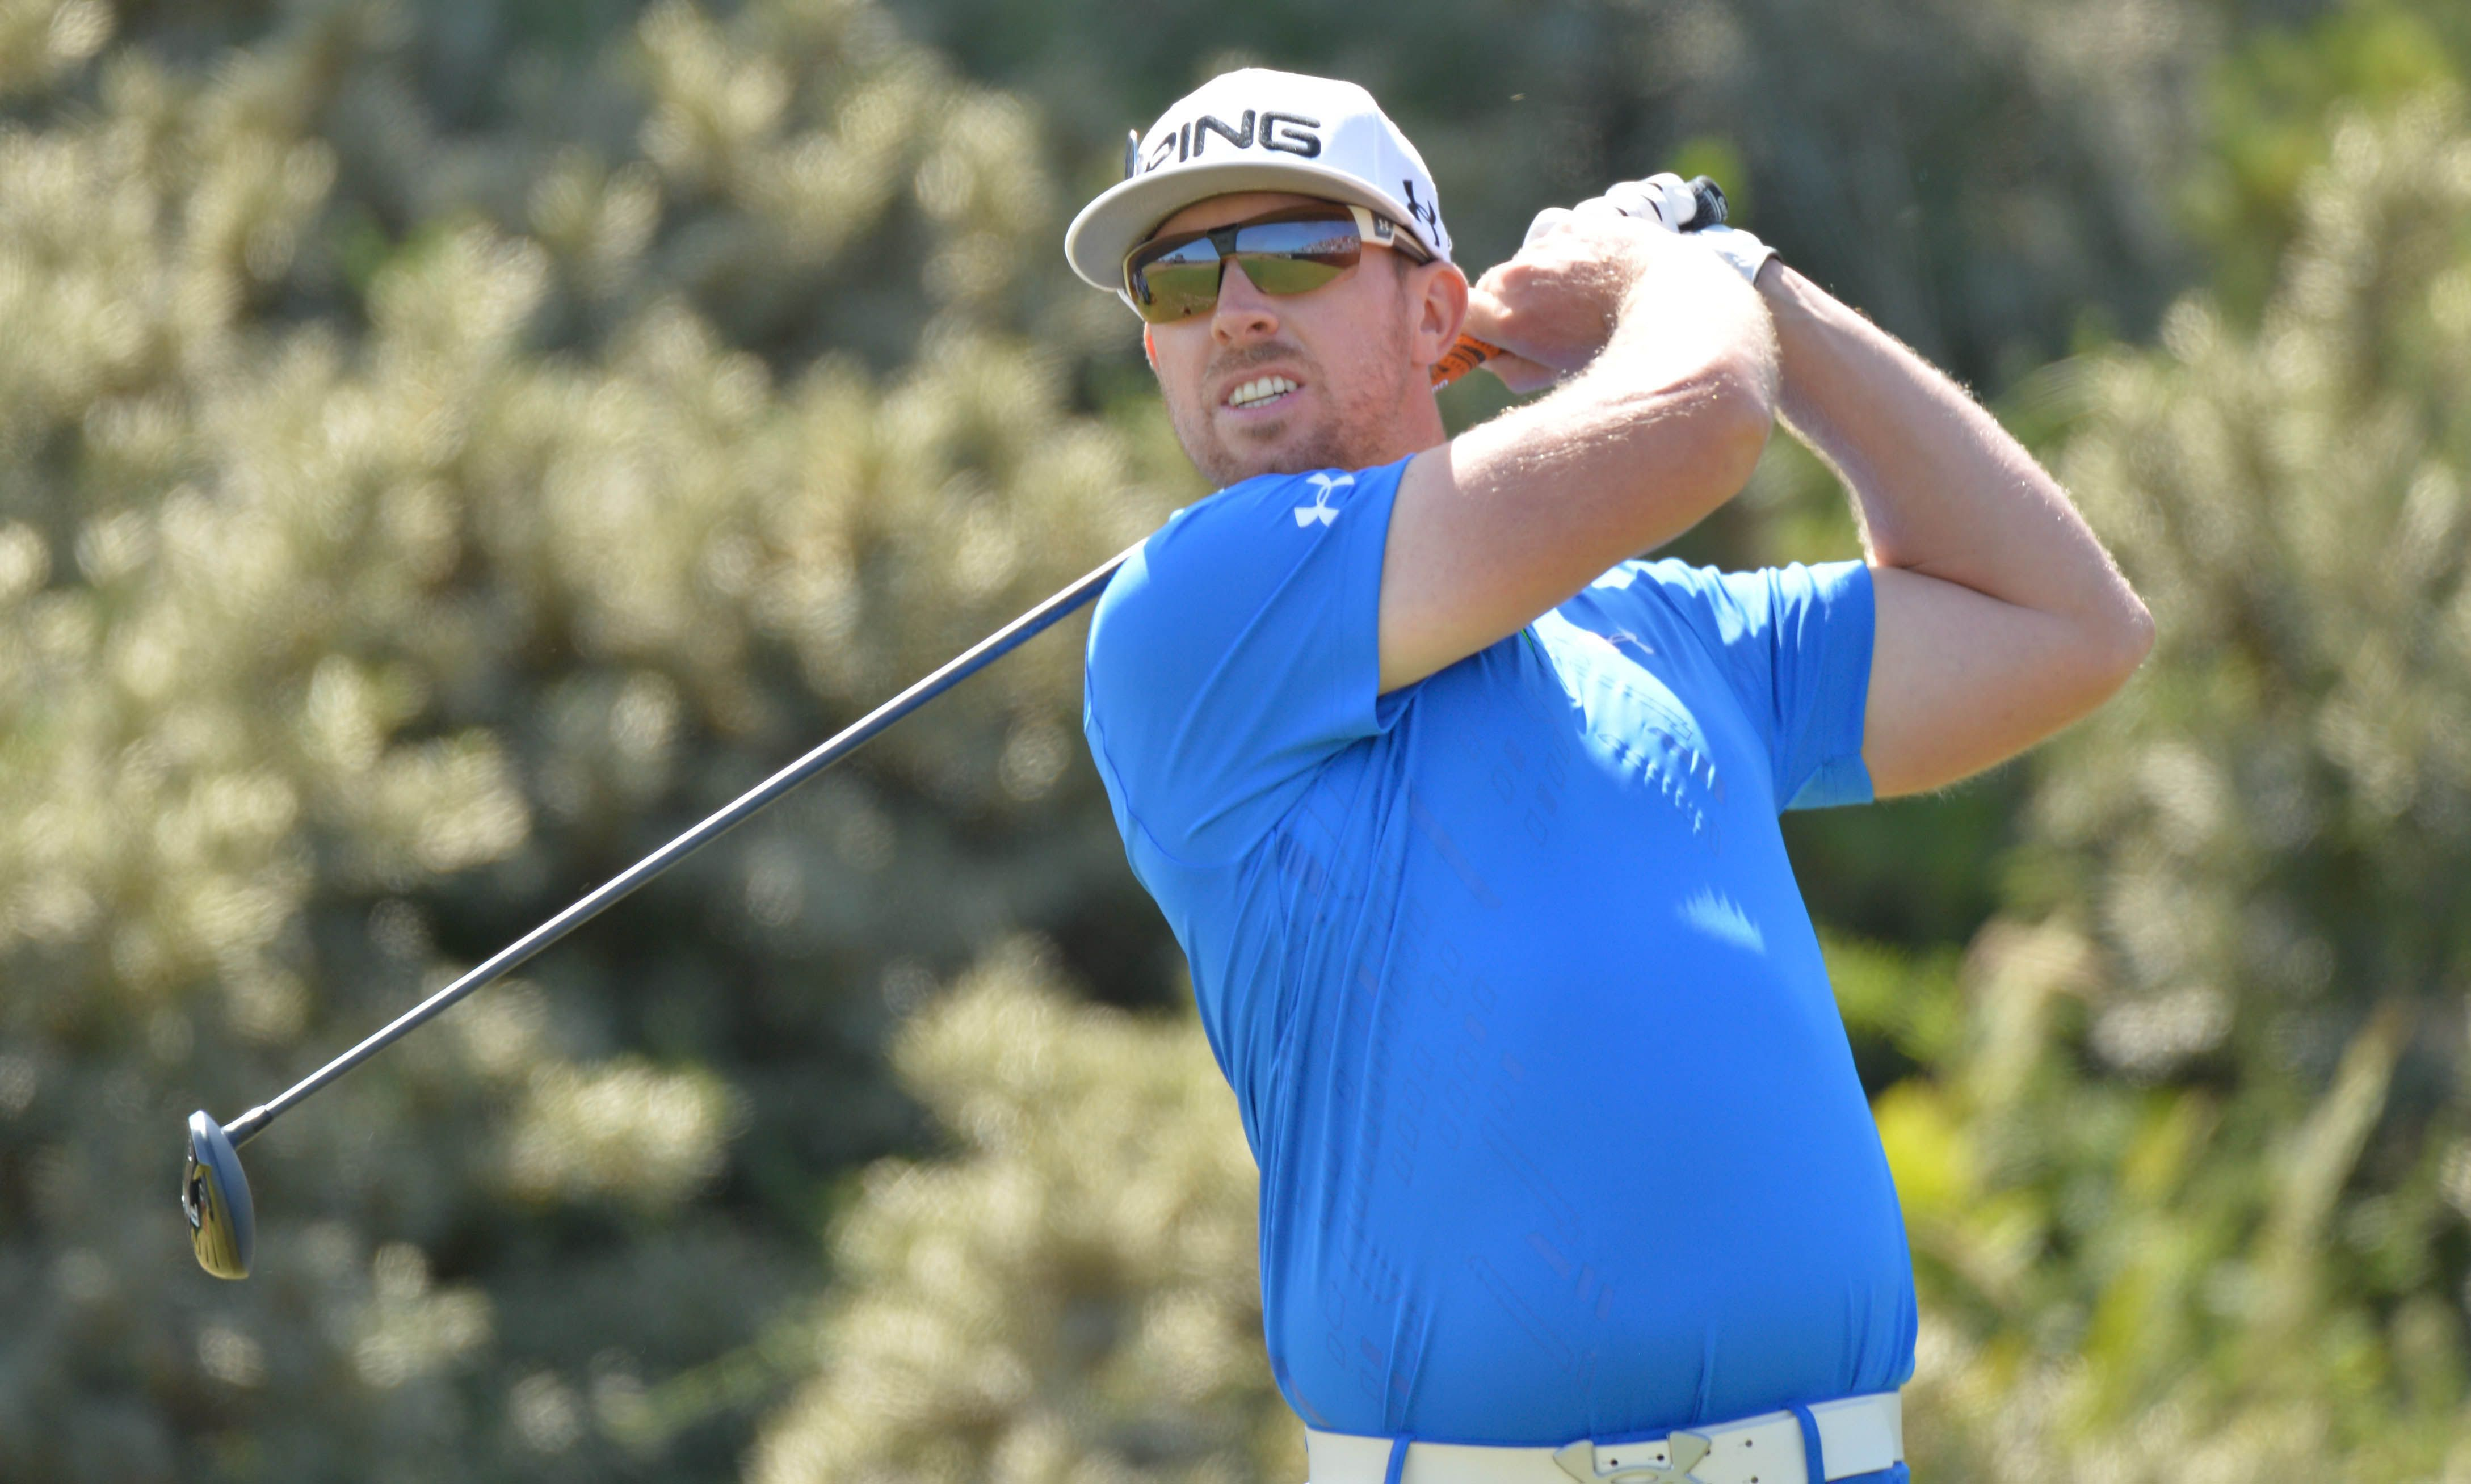 """Golfer and tournament leader, Hunter Mahan has withdrawn from the RBC Canadian Open! The 31 year old American found out his wife had gone into labor and exited the tournament. He said, """"I received exciting news a short time ago that my wife Kandi has gone into labor with our first child. Kandi and I are thrilled about the addition to the Mahan family and we look forward to returning to the RBC Canadian Open in the coming years."""""""